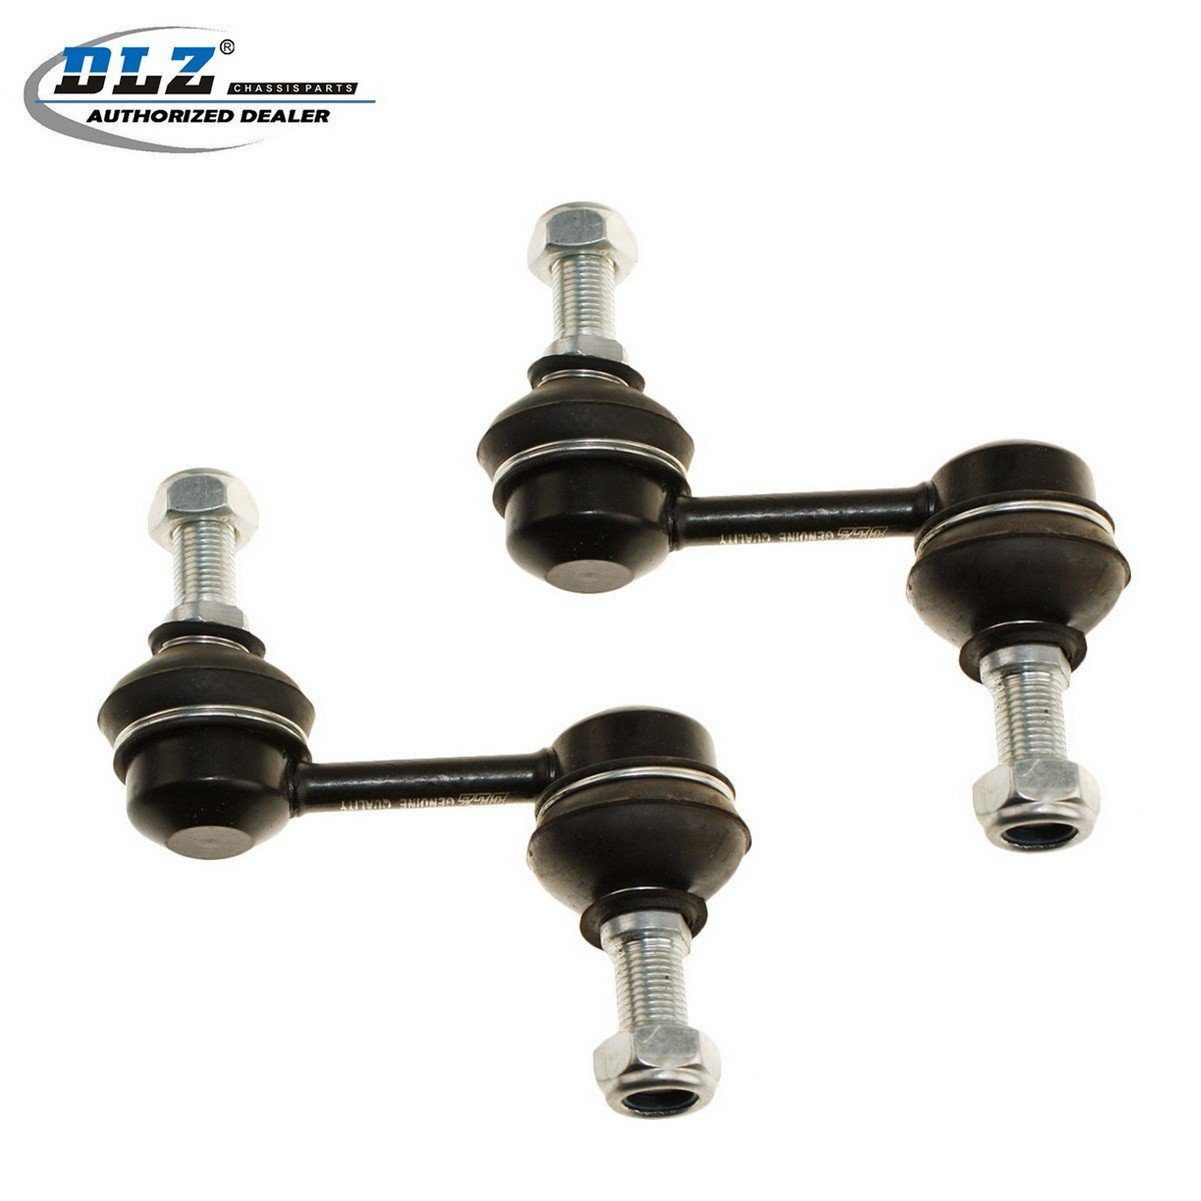 Watching Endless Armada Entering >> Dlz 2 Pcs Front Stabilizer Sway Bar Link Compatible With 2004 2013 Infiniti Qx56 2005 2015 Nissan Armada 2004 Nissan Pathfinder Armada 2004 2015